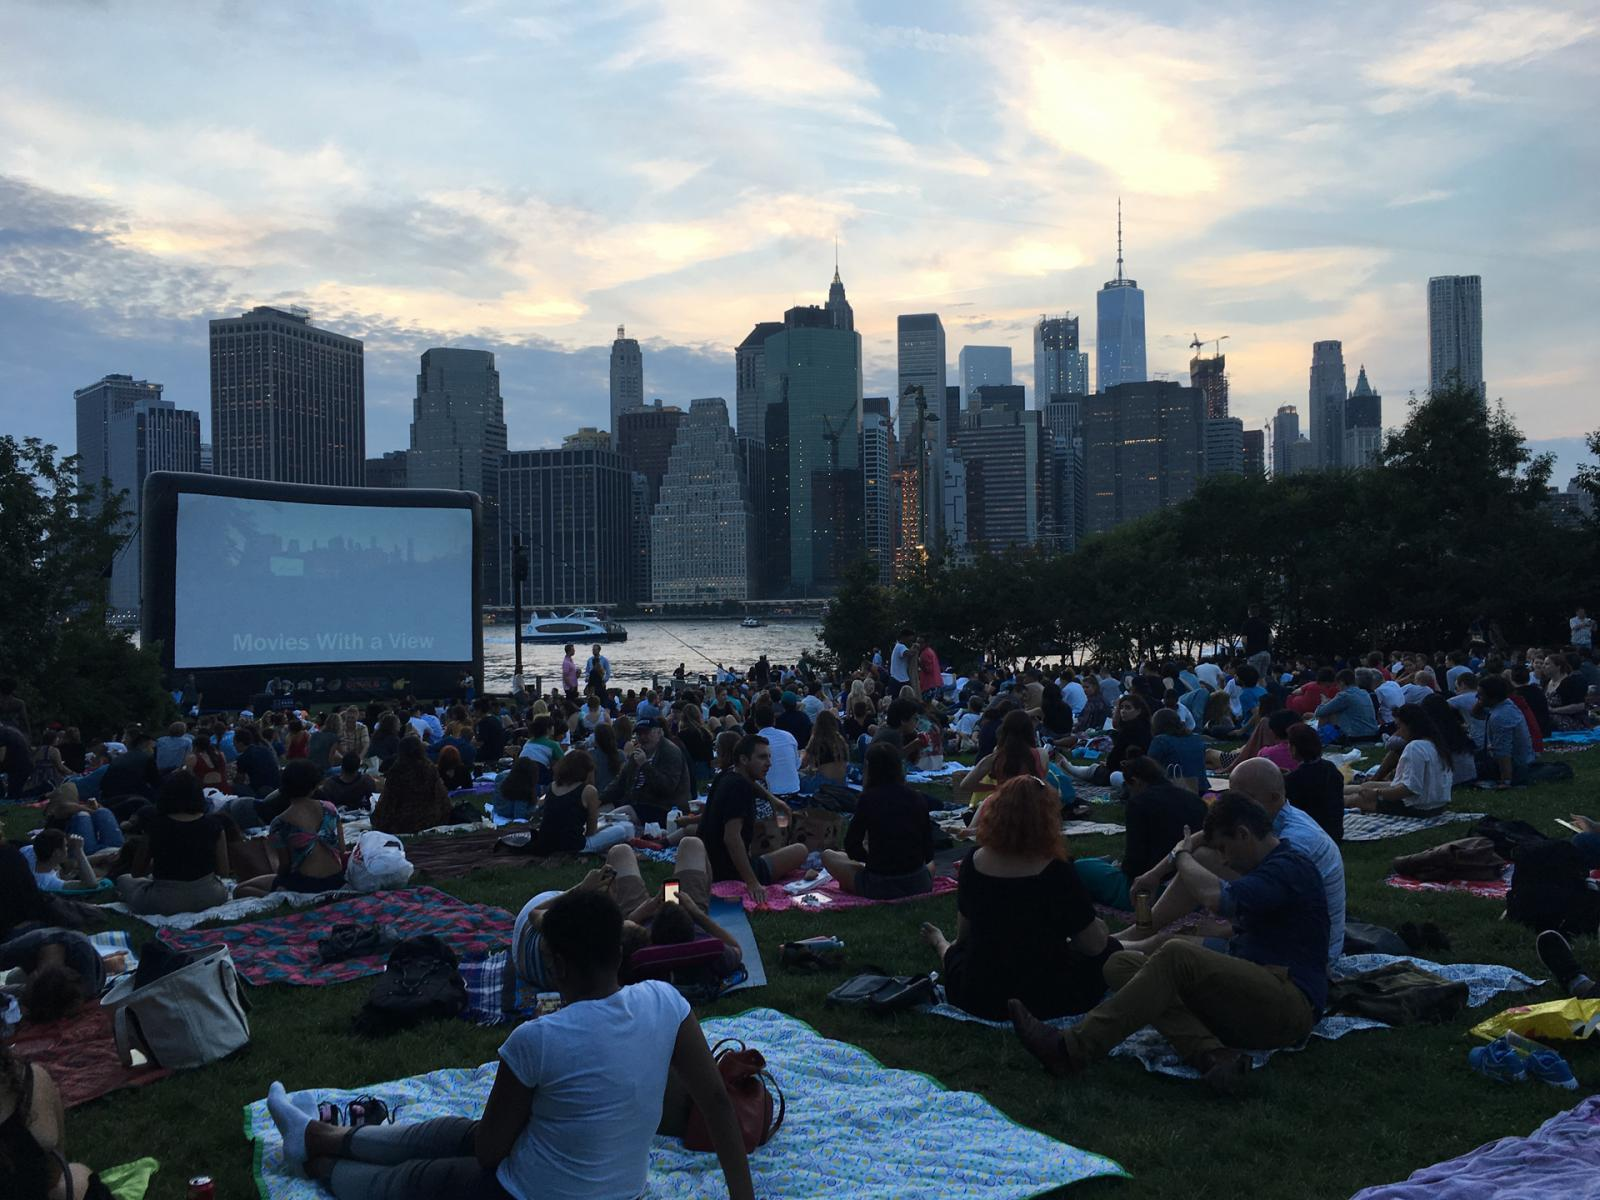 Movies with a view